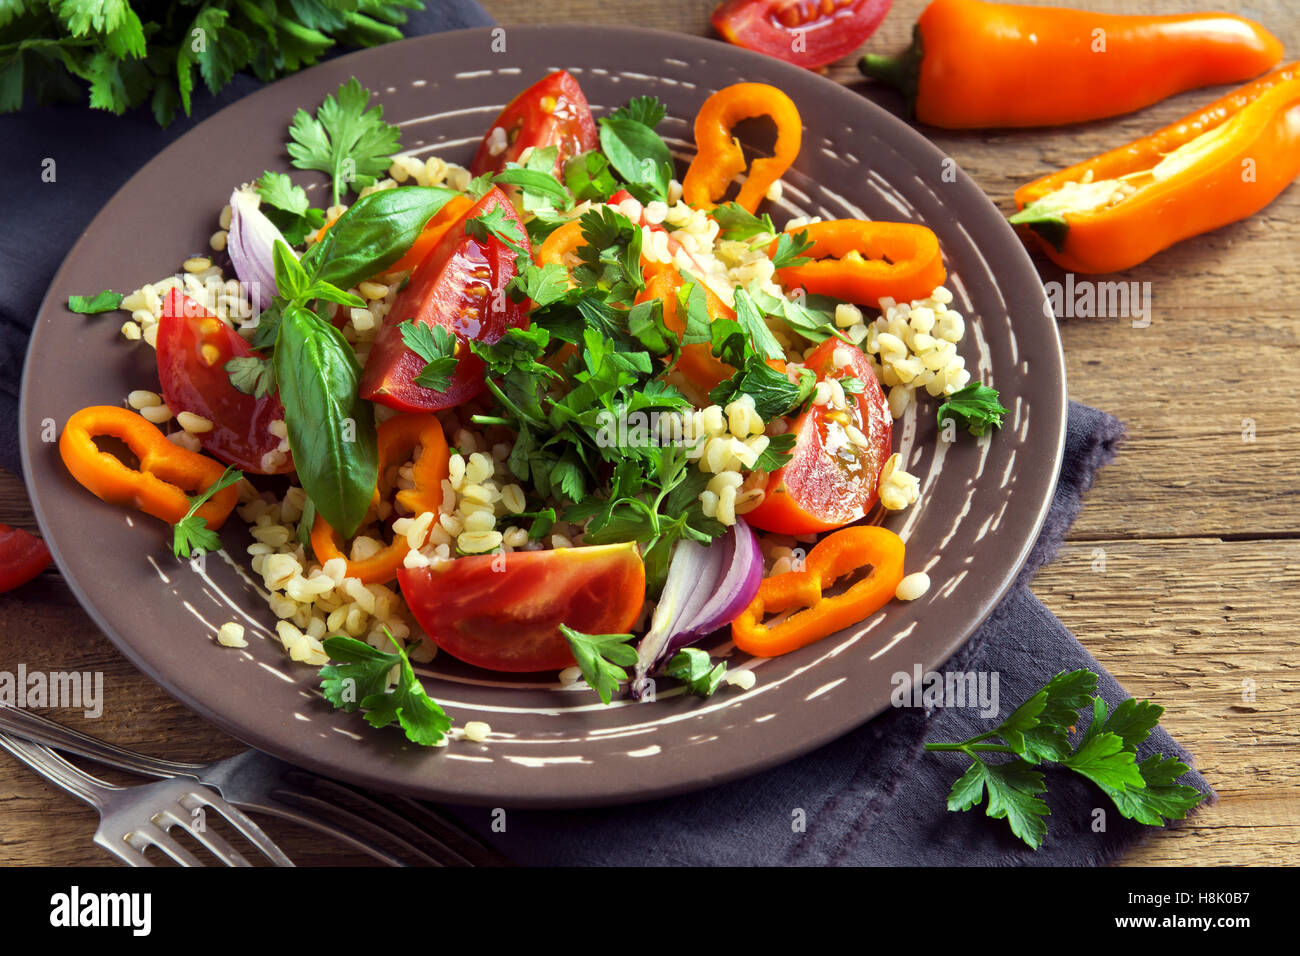 Fresh organic tomato and couscous salad with vegetables and greens - healthy vegetarian salad on rustic plate close - Stock Image